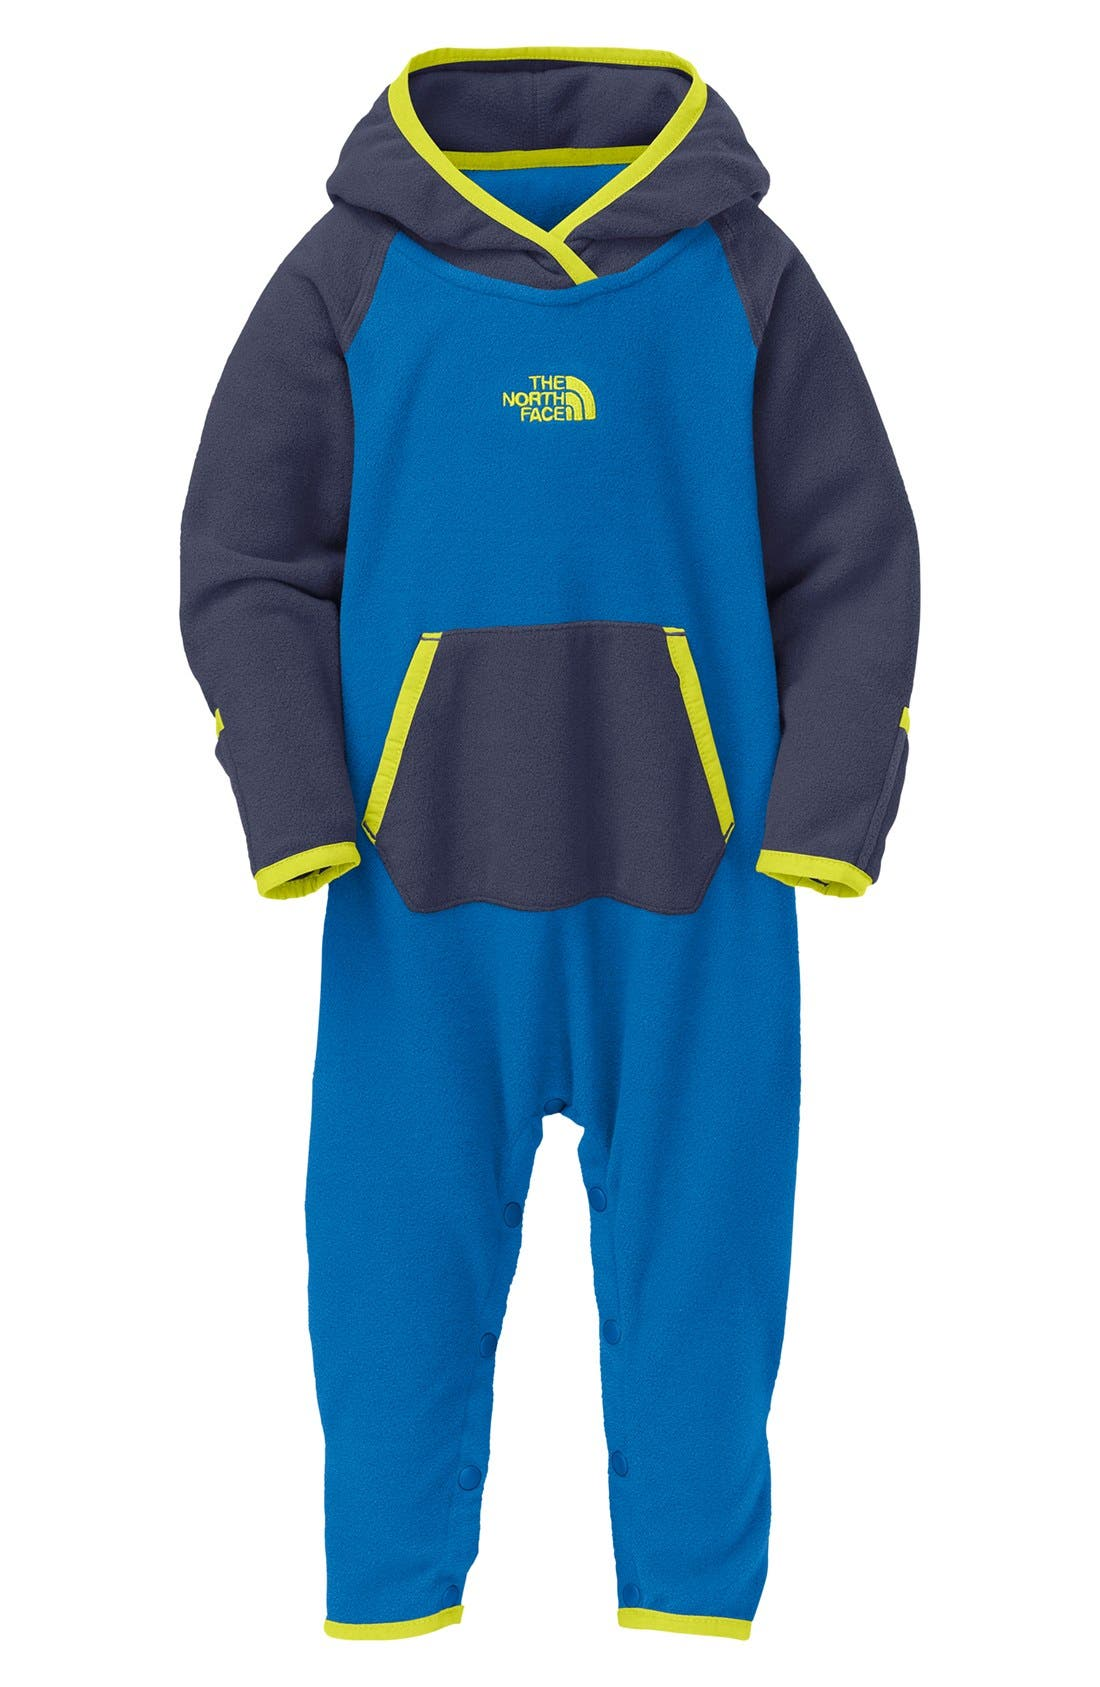 Alternate Image 1 Selected - The North Face 'Glacier' One-Piece (Baby Boys)